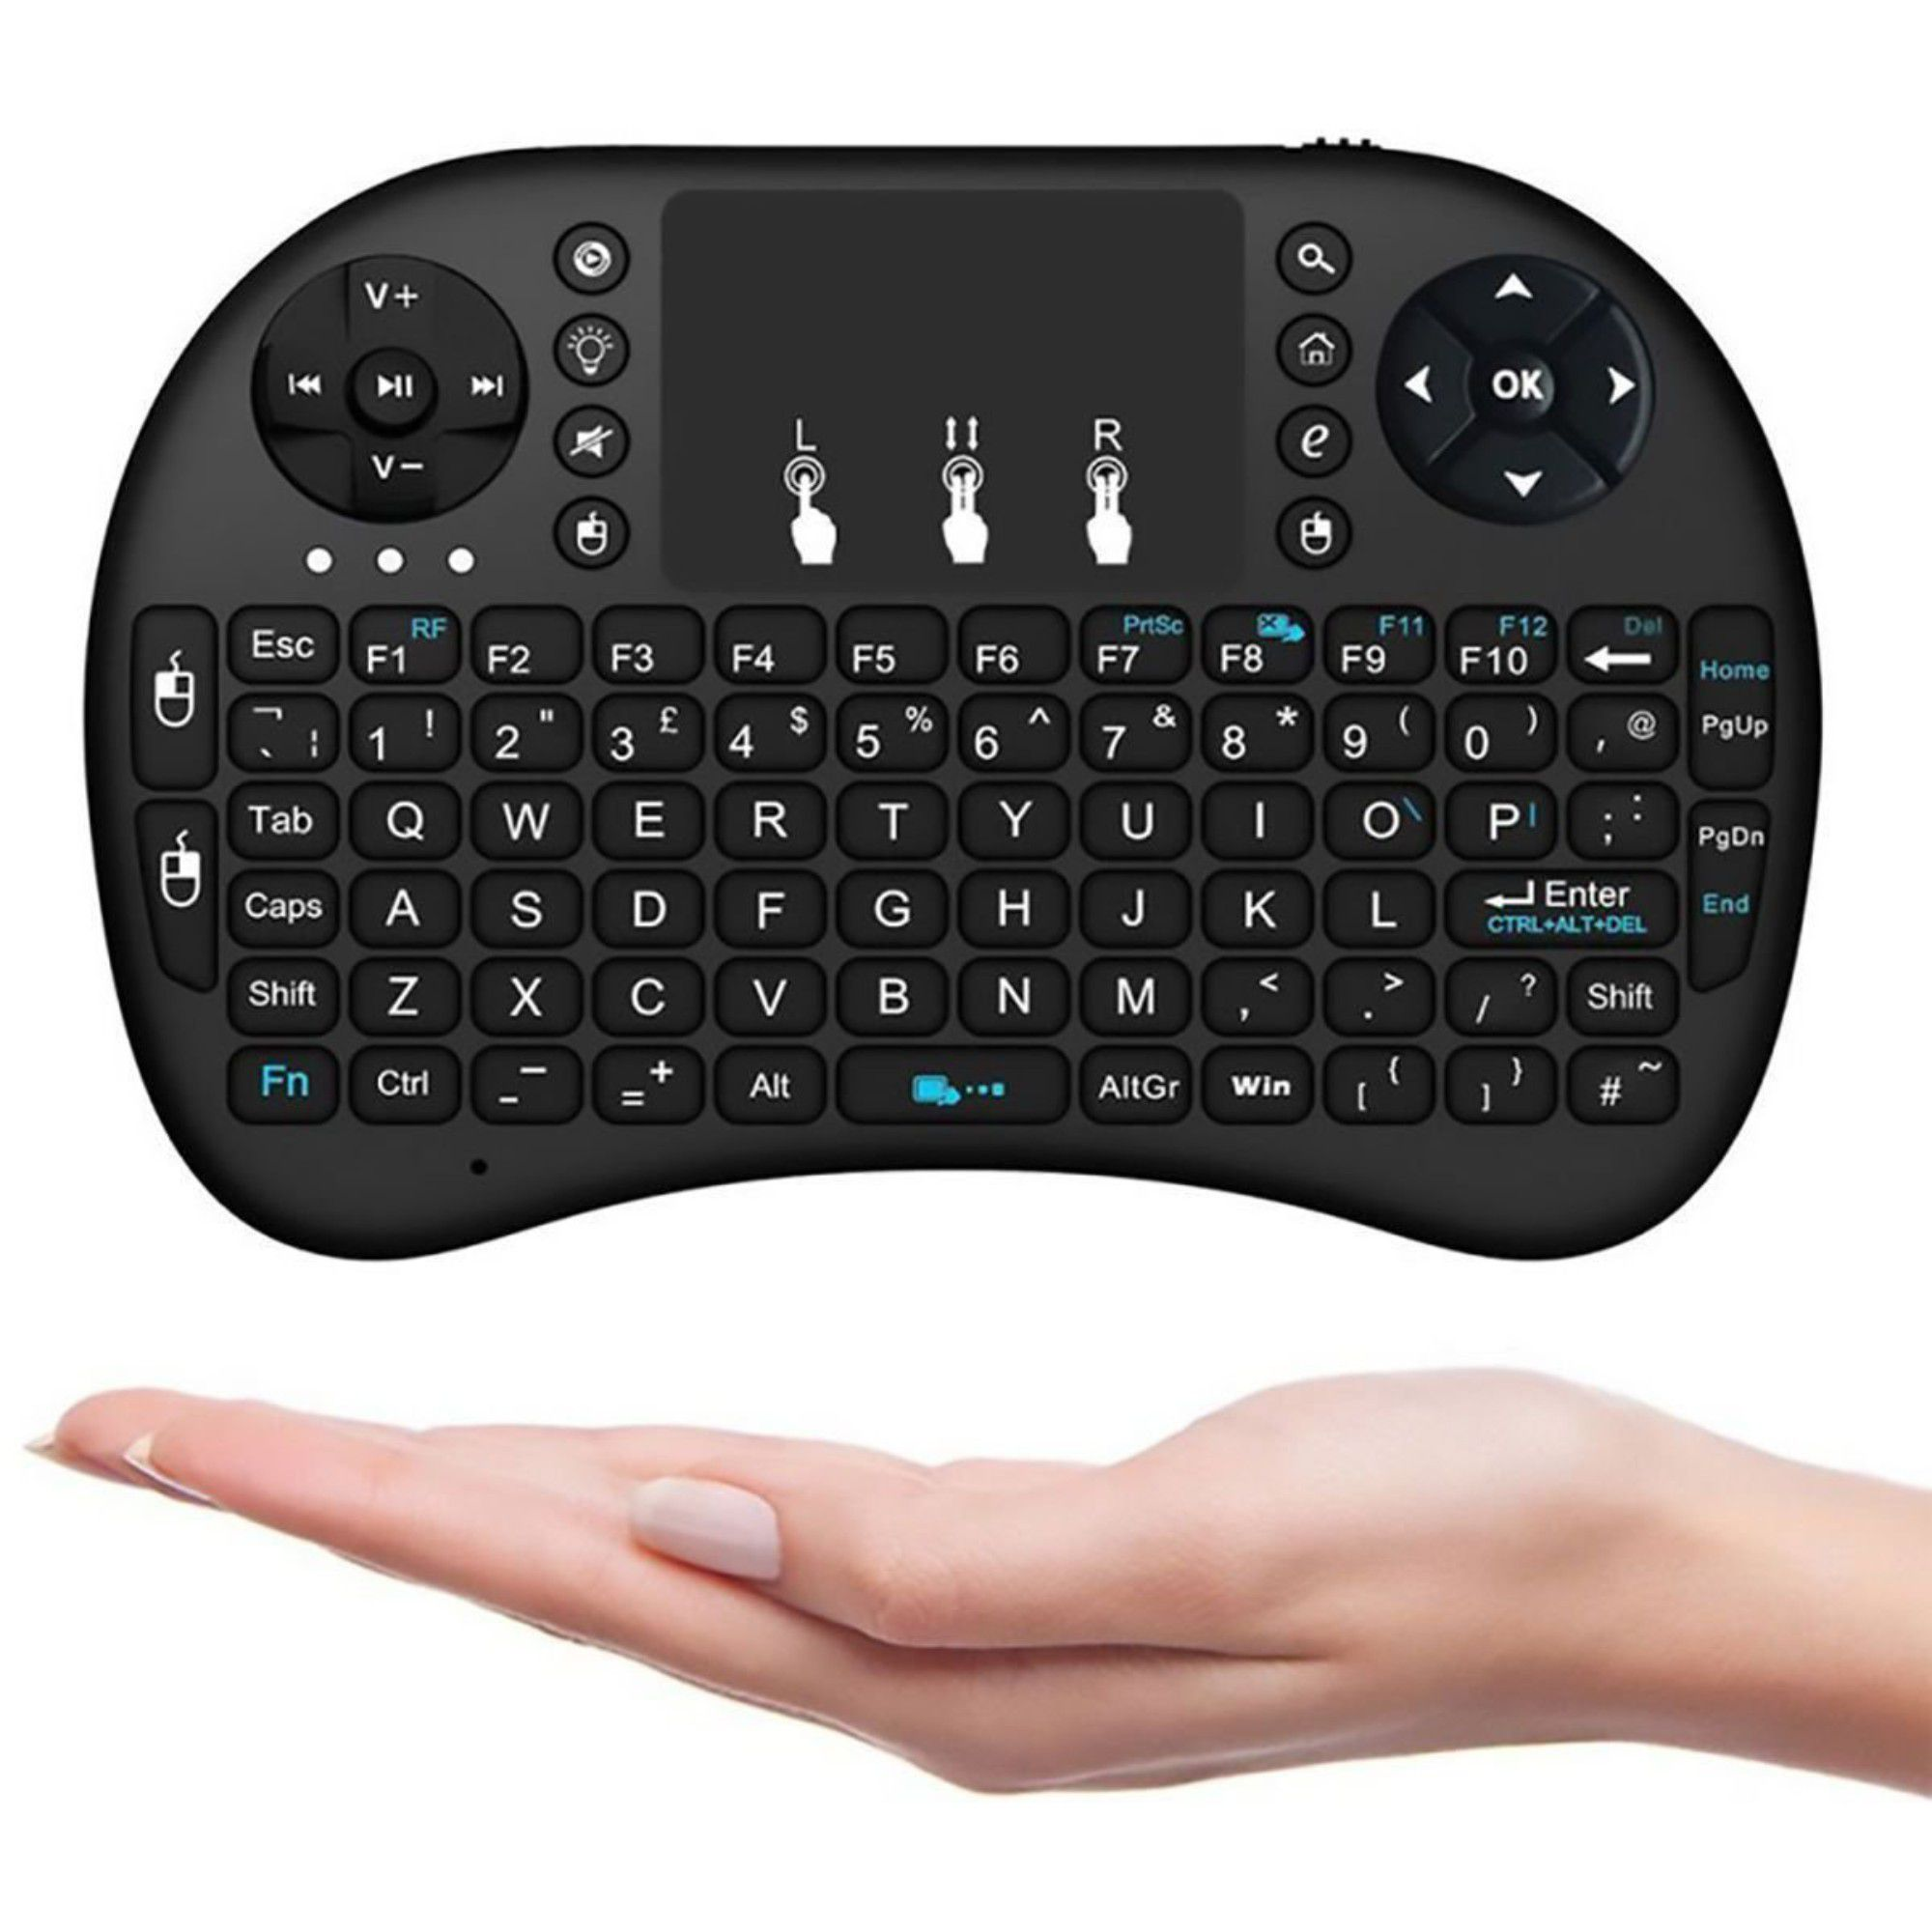 Mini Teclado Keyboard Iluminado Recarregável Wireless P/ Tv Box Smart TV Notebook